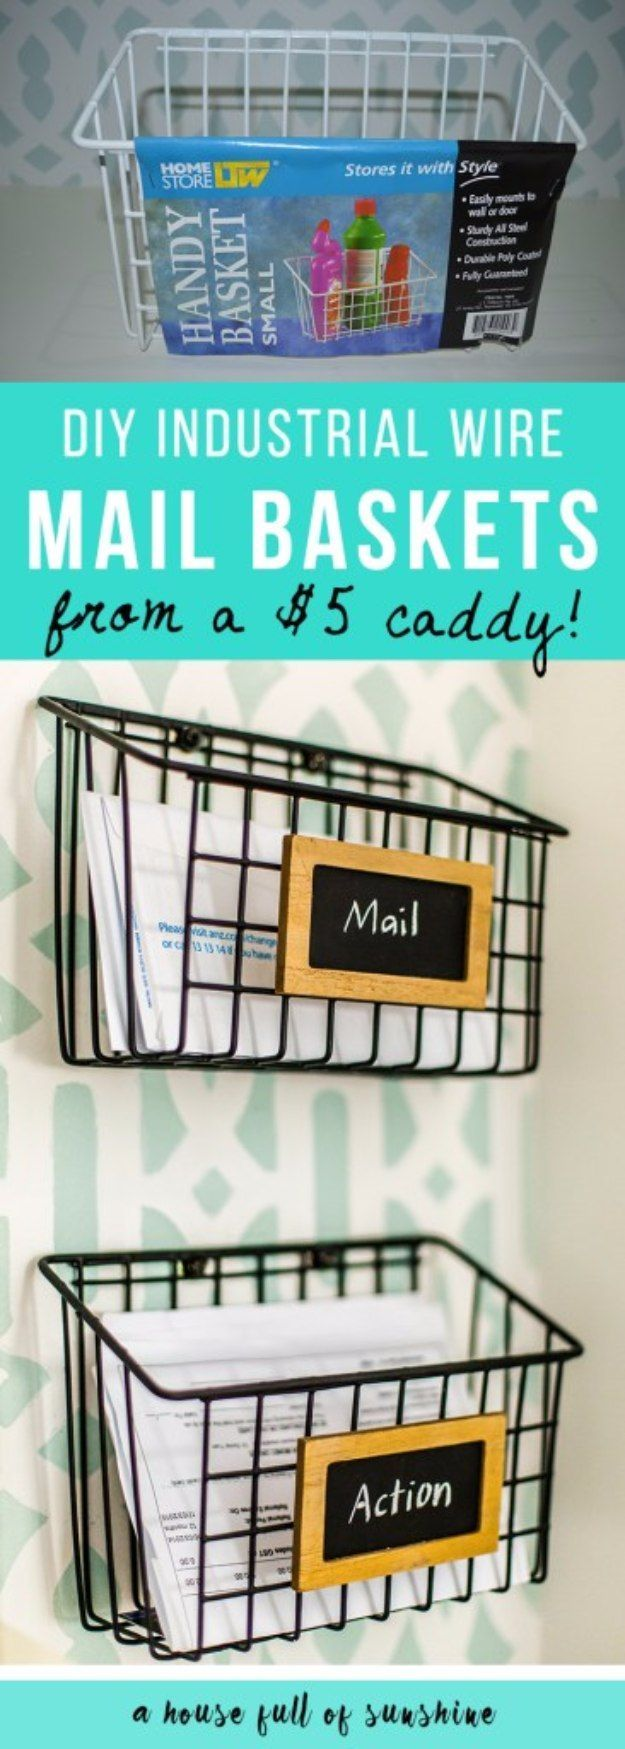 DIY Home Office Decor Ideas - DIY Industrial Wire Mail Baskets - Do It Yourself Desks, Tables, Wall Art, Chairs, Rugs, Seating and Desk Accessories for Your Home Office http://diyjoy.com/diy-home-office-decor